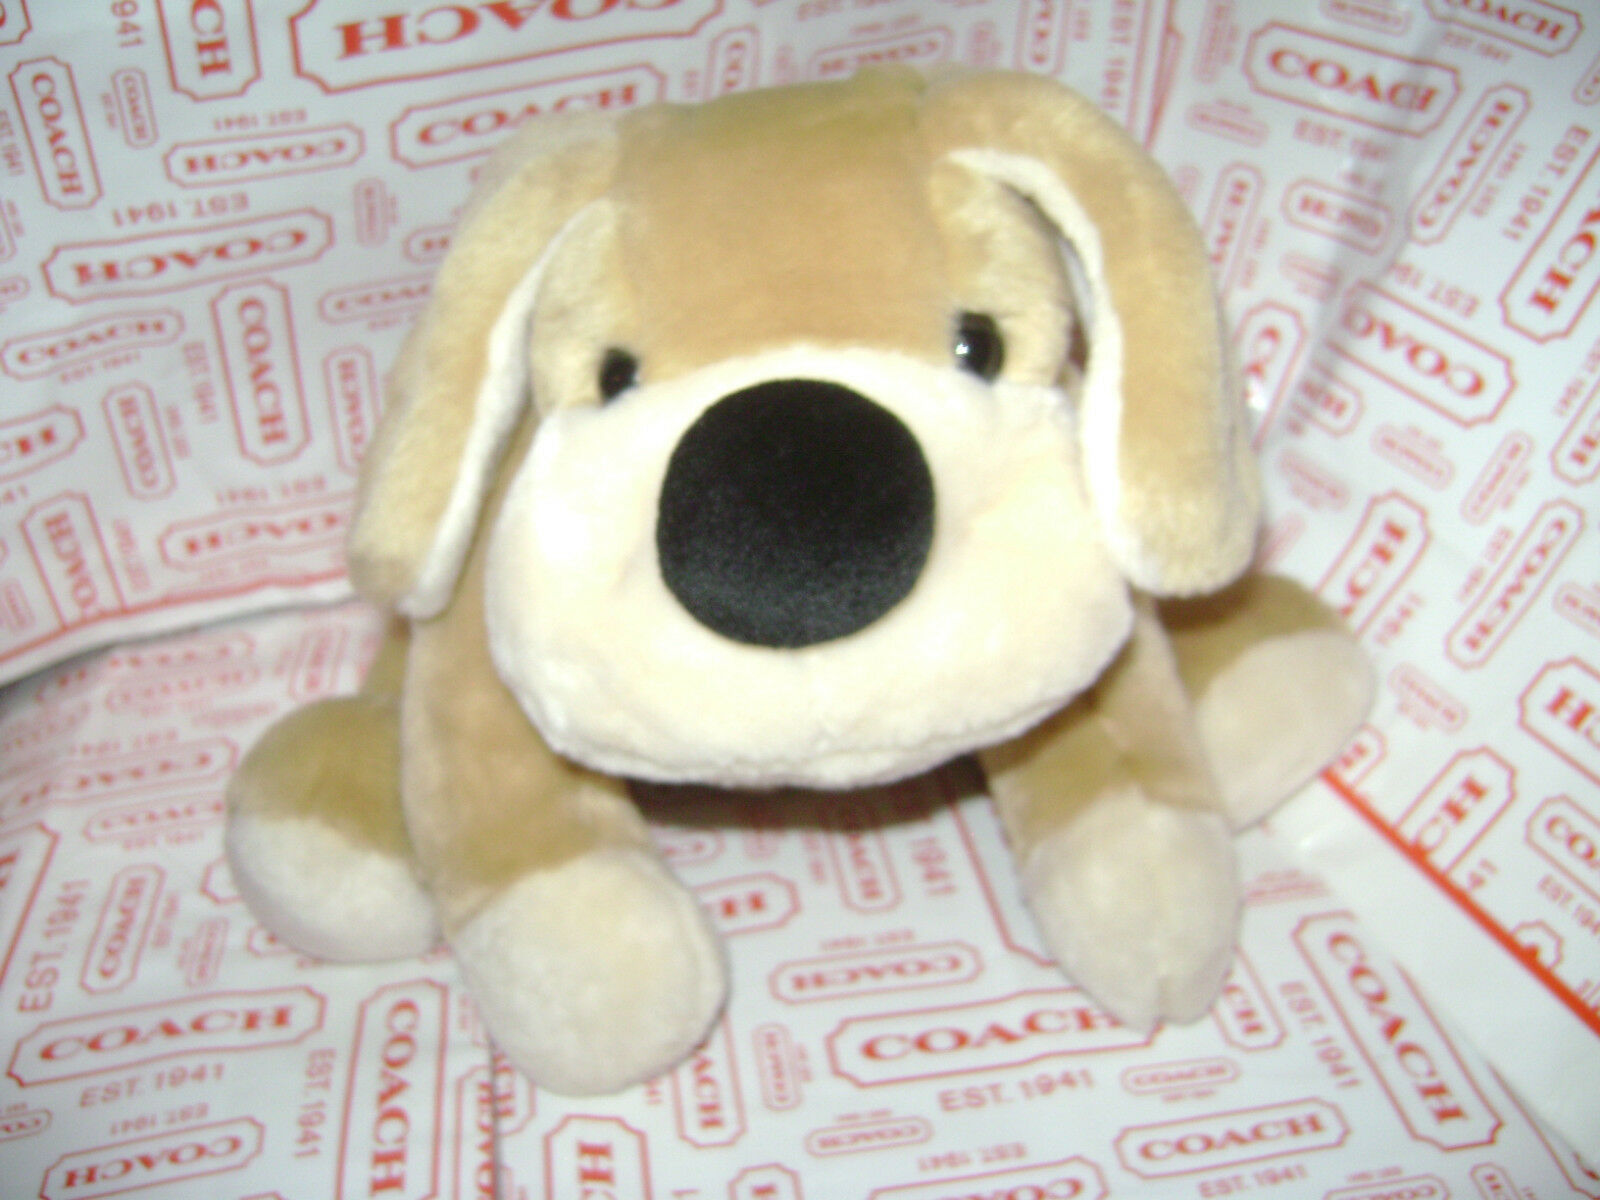 FAO SCHWARZ FIFTH AVENUE BIG DOG PUPPY STUFFED PLUSH ANIMAL TAN braun 16